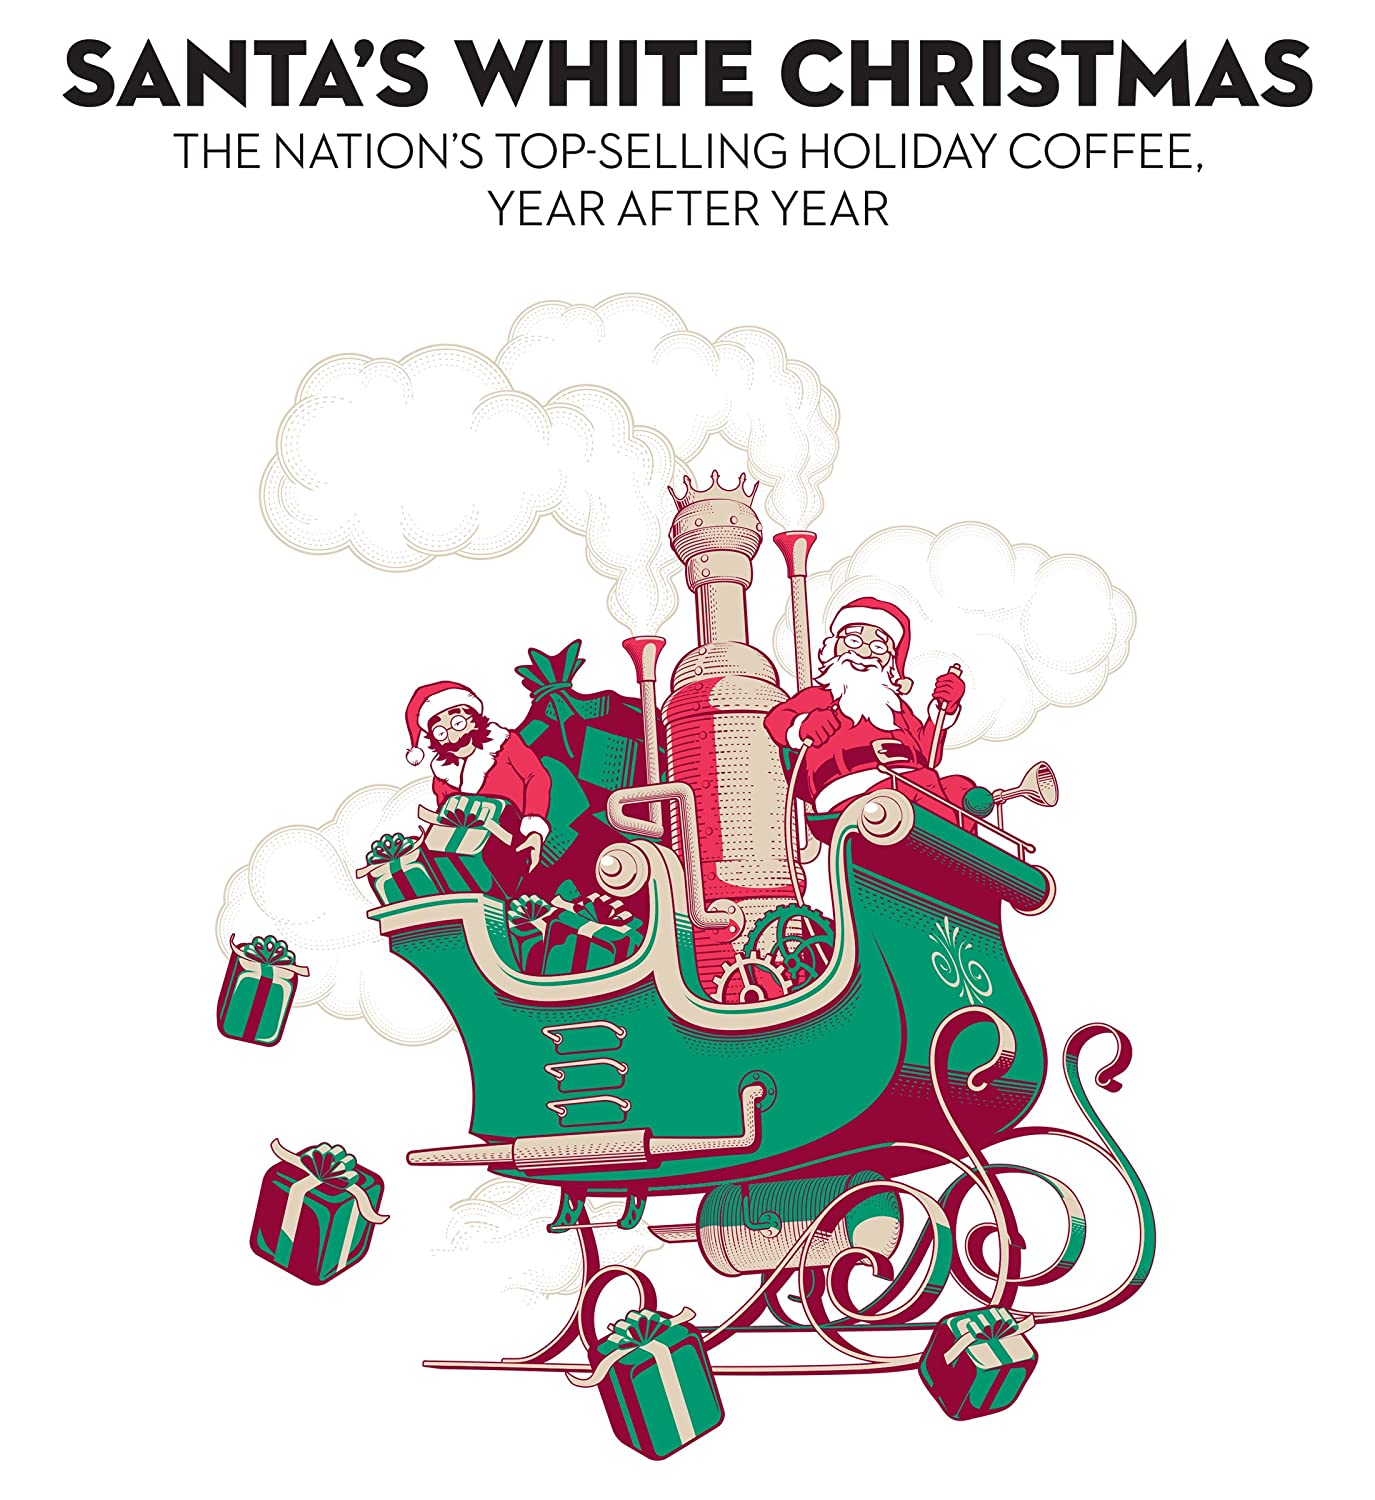 Amazon.com : Barnie\'s Coffee & Tea Santa\'s White Christmas, Ground ...